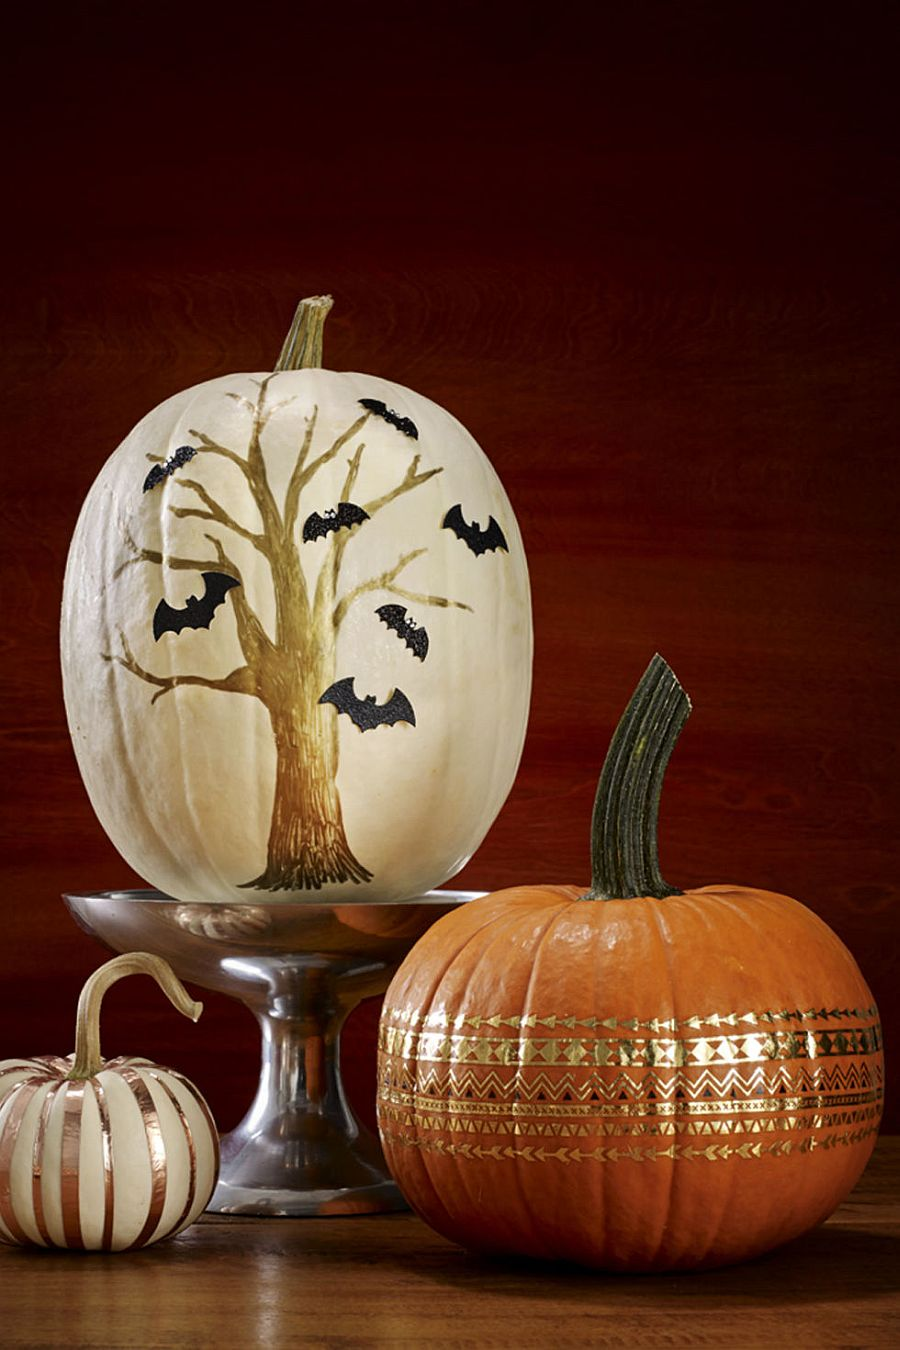 Painted pumpkin brings a touch of spooky charm to the Halloween setting